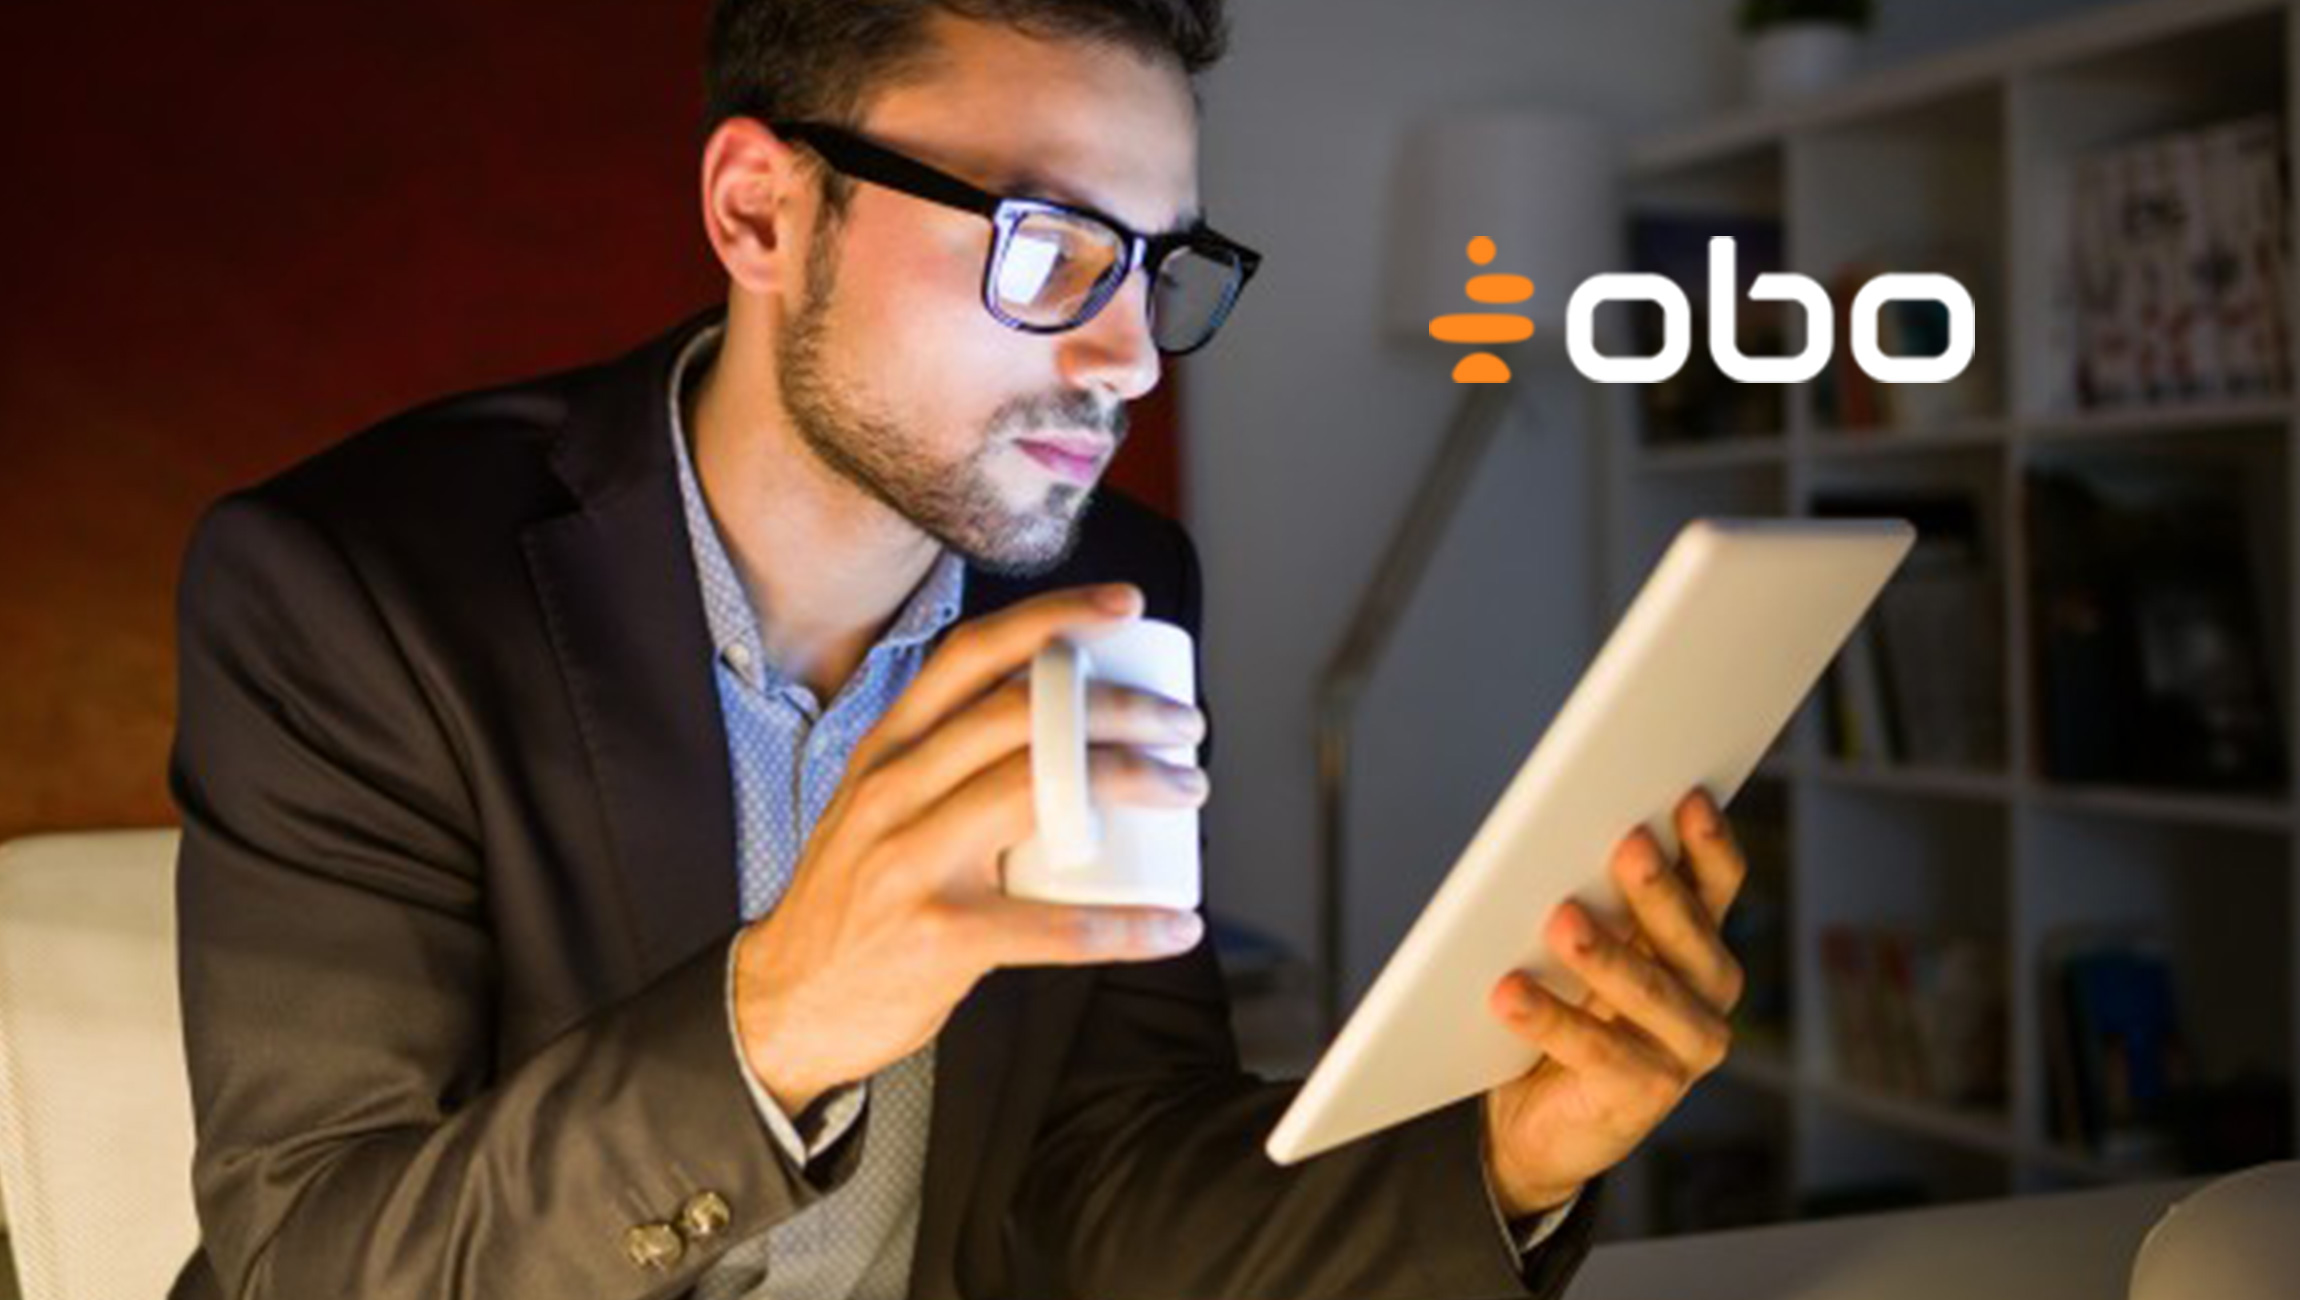 """Obo Launches with $8.2 Million in Funding to Foster """"Succeed Faster"""" Mindset in Product Innovation"""